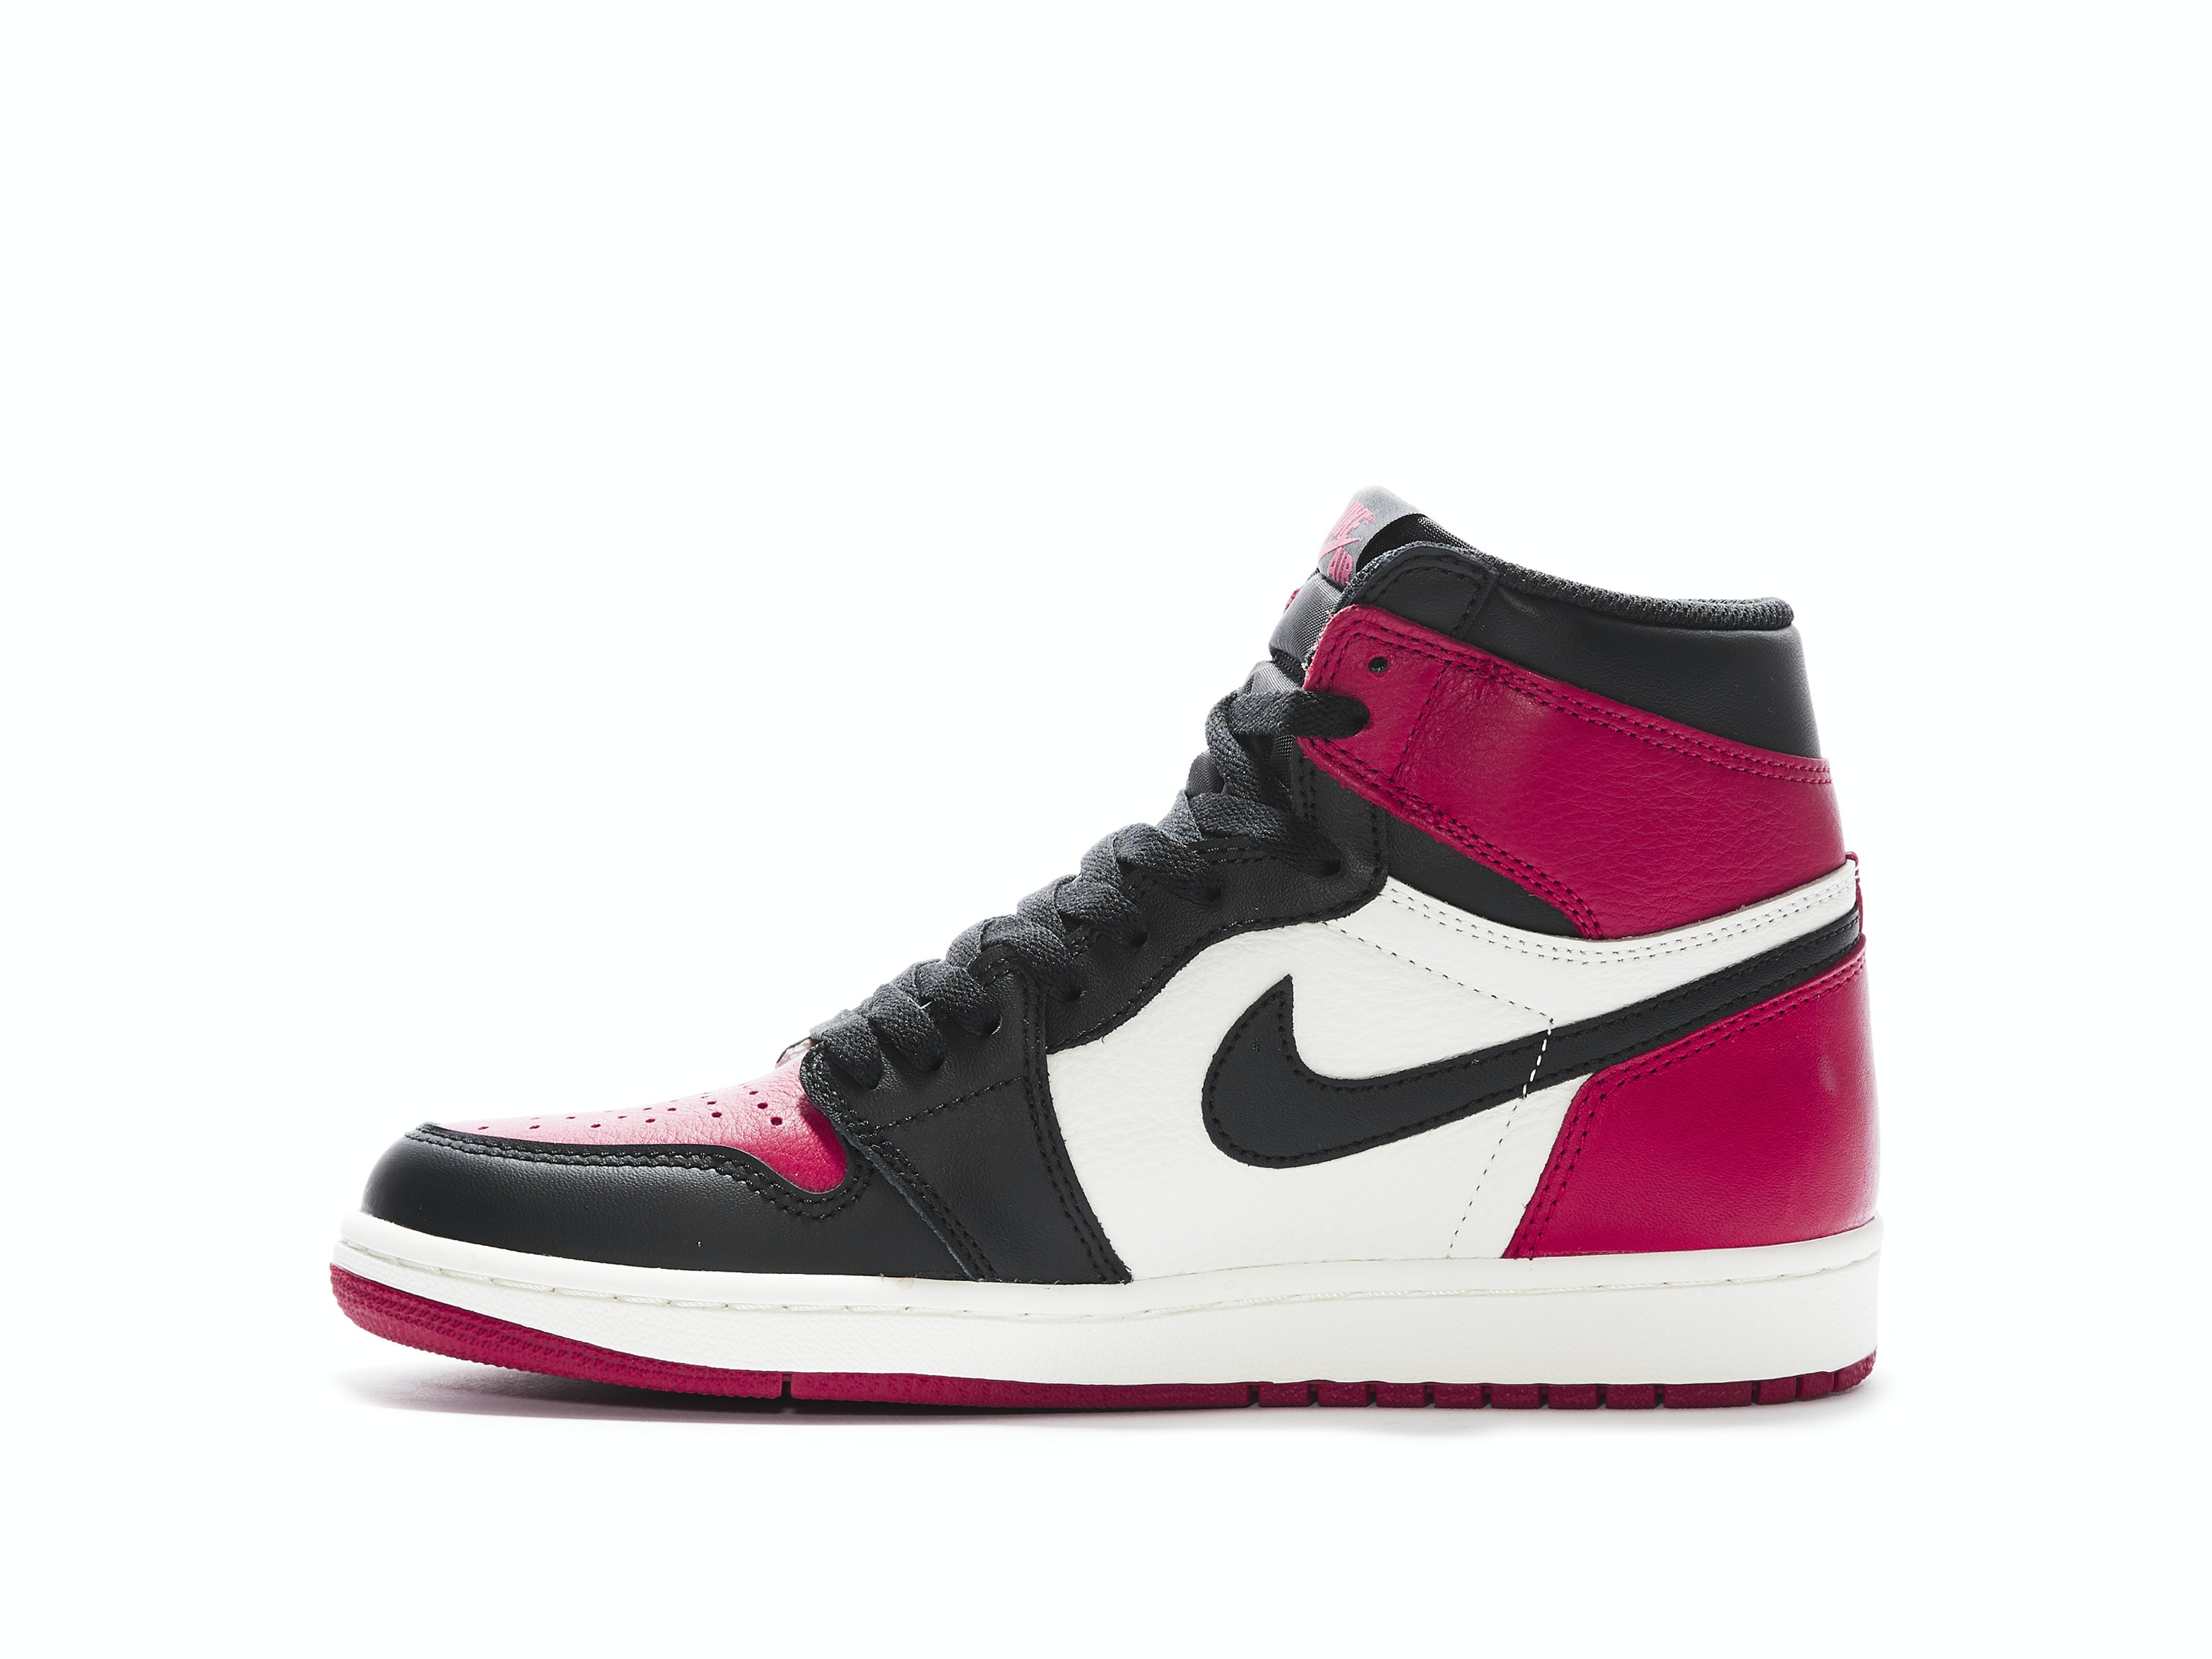 4efe903fe1db ... Retro High OG Bred Toe. 100% AuthenticAvg Delivery Time  1-2 days